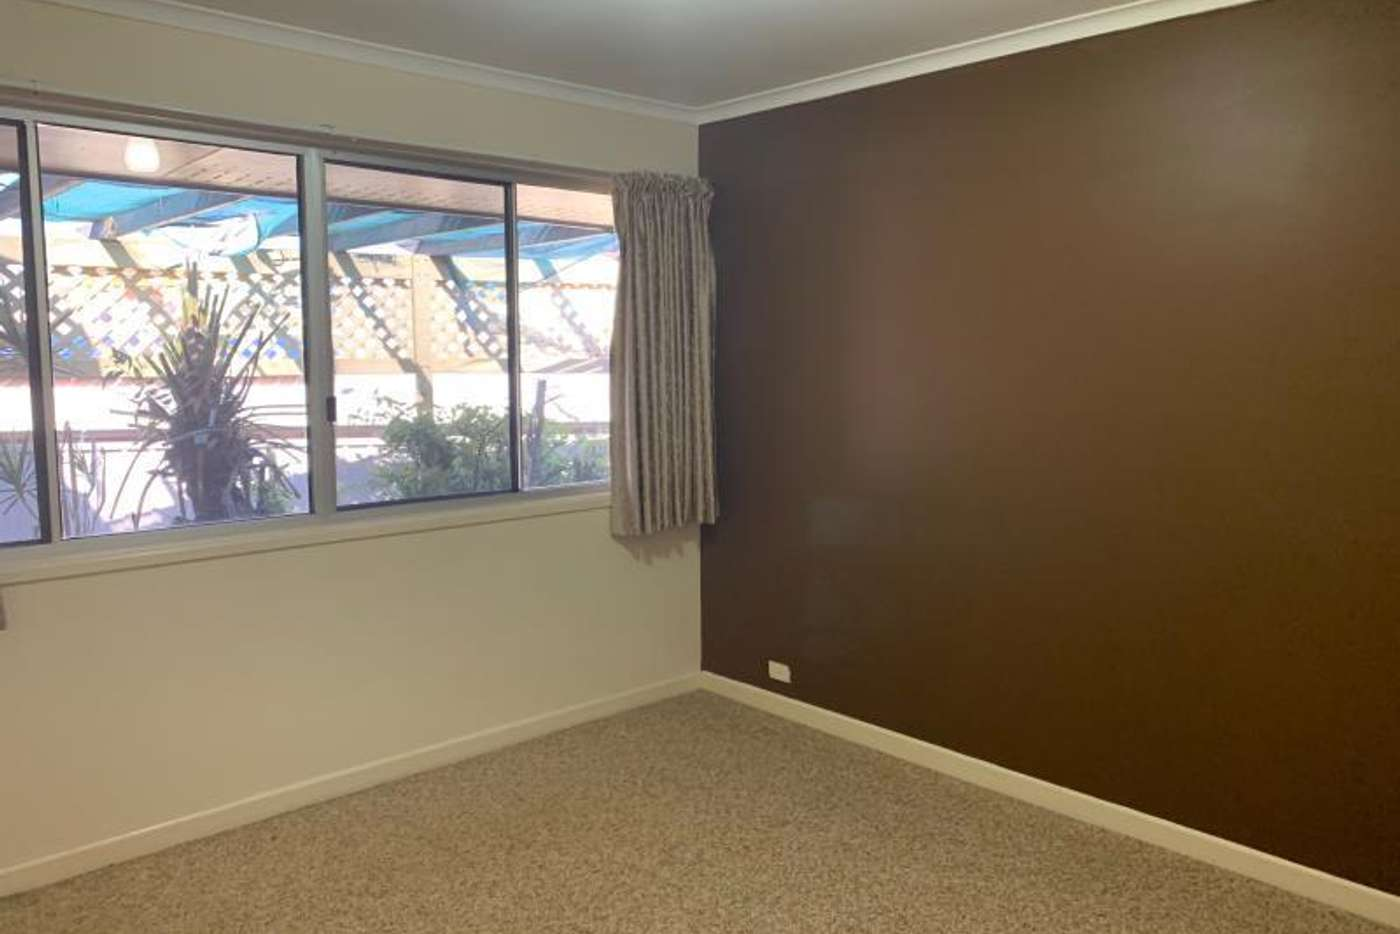 Sixth view of Homely house listing, 14 Paroz Crescent, Biloela QLD 4715